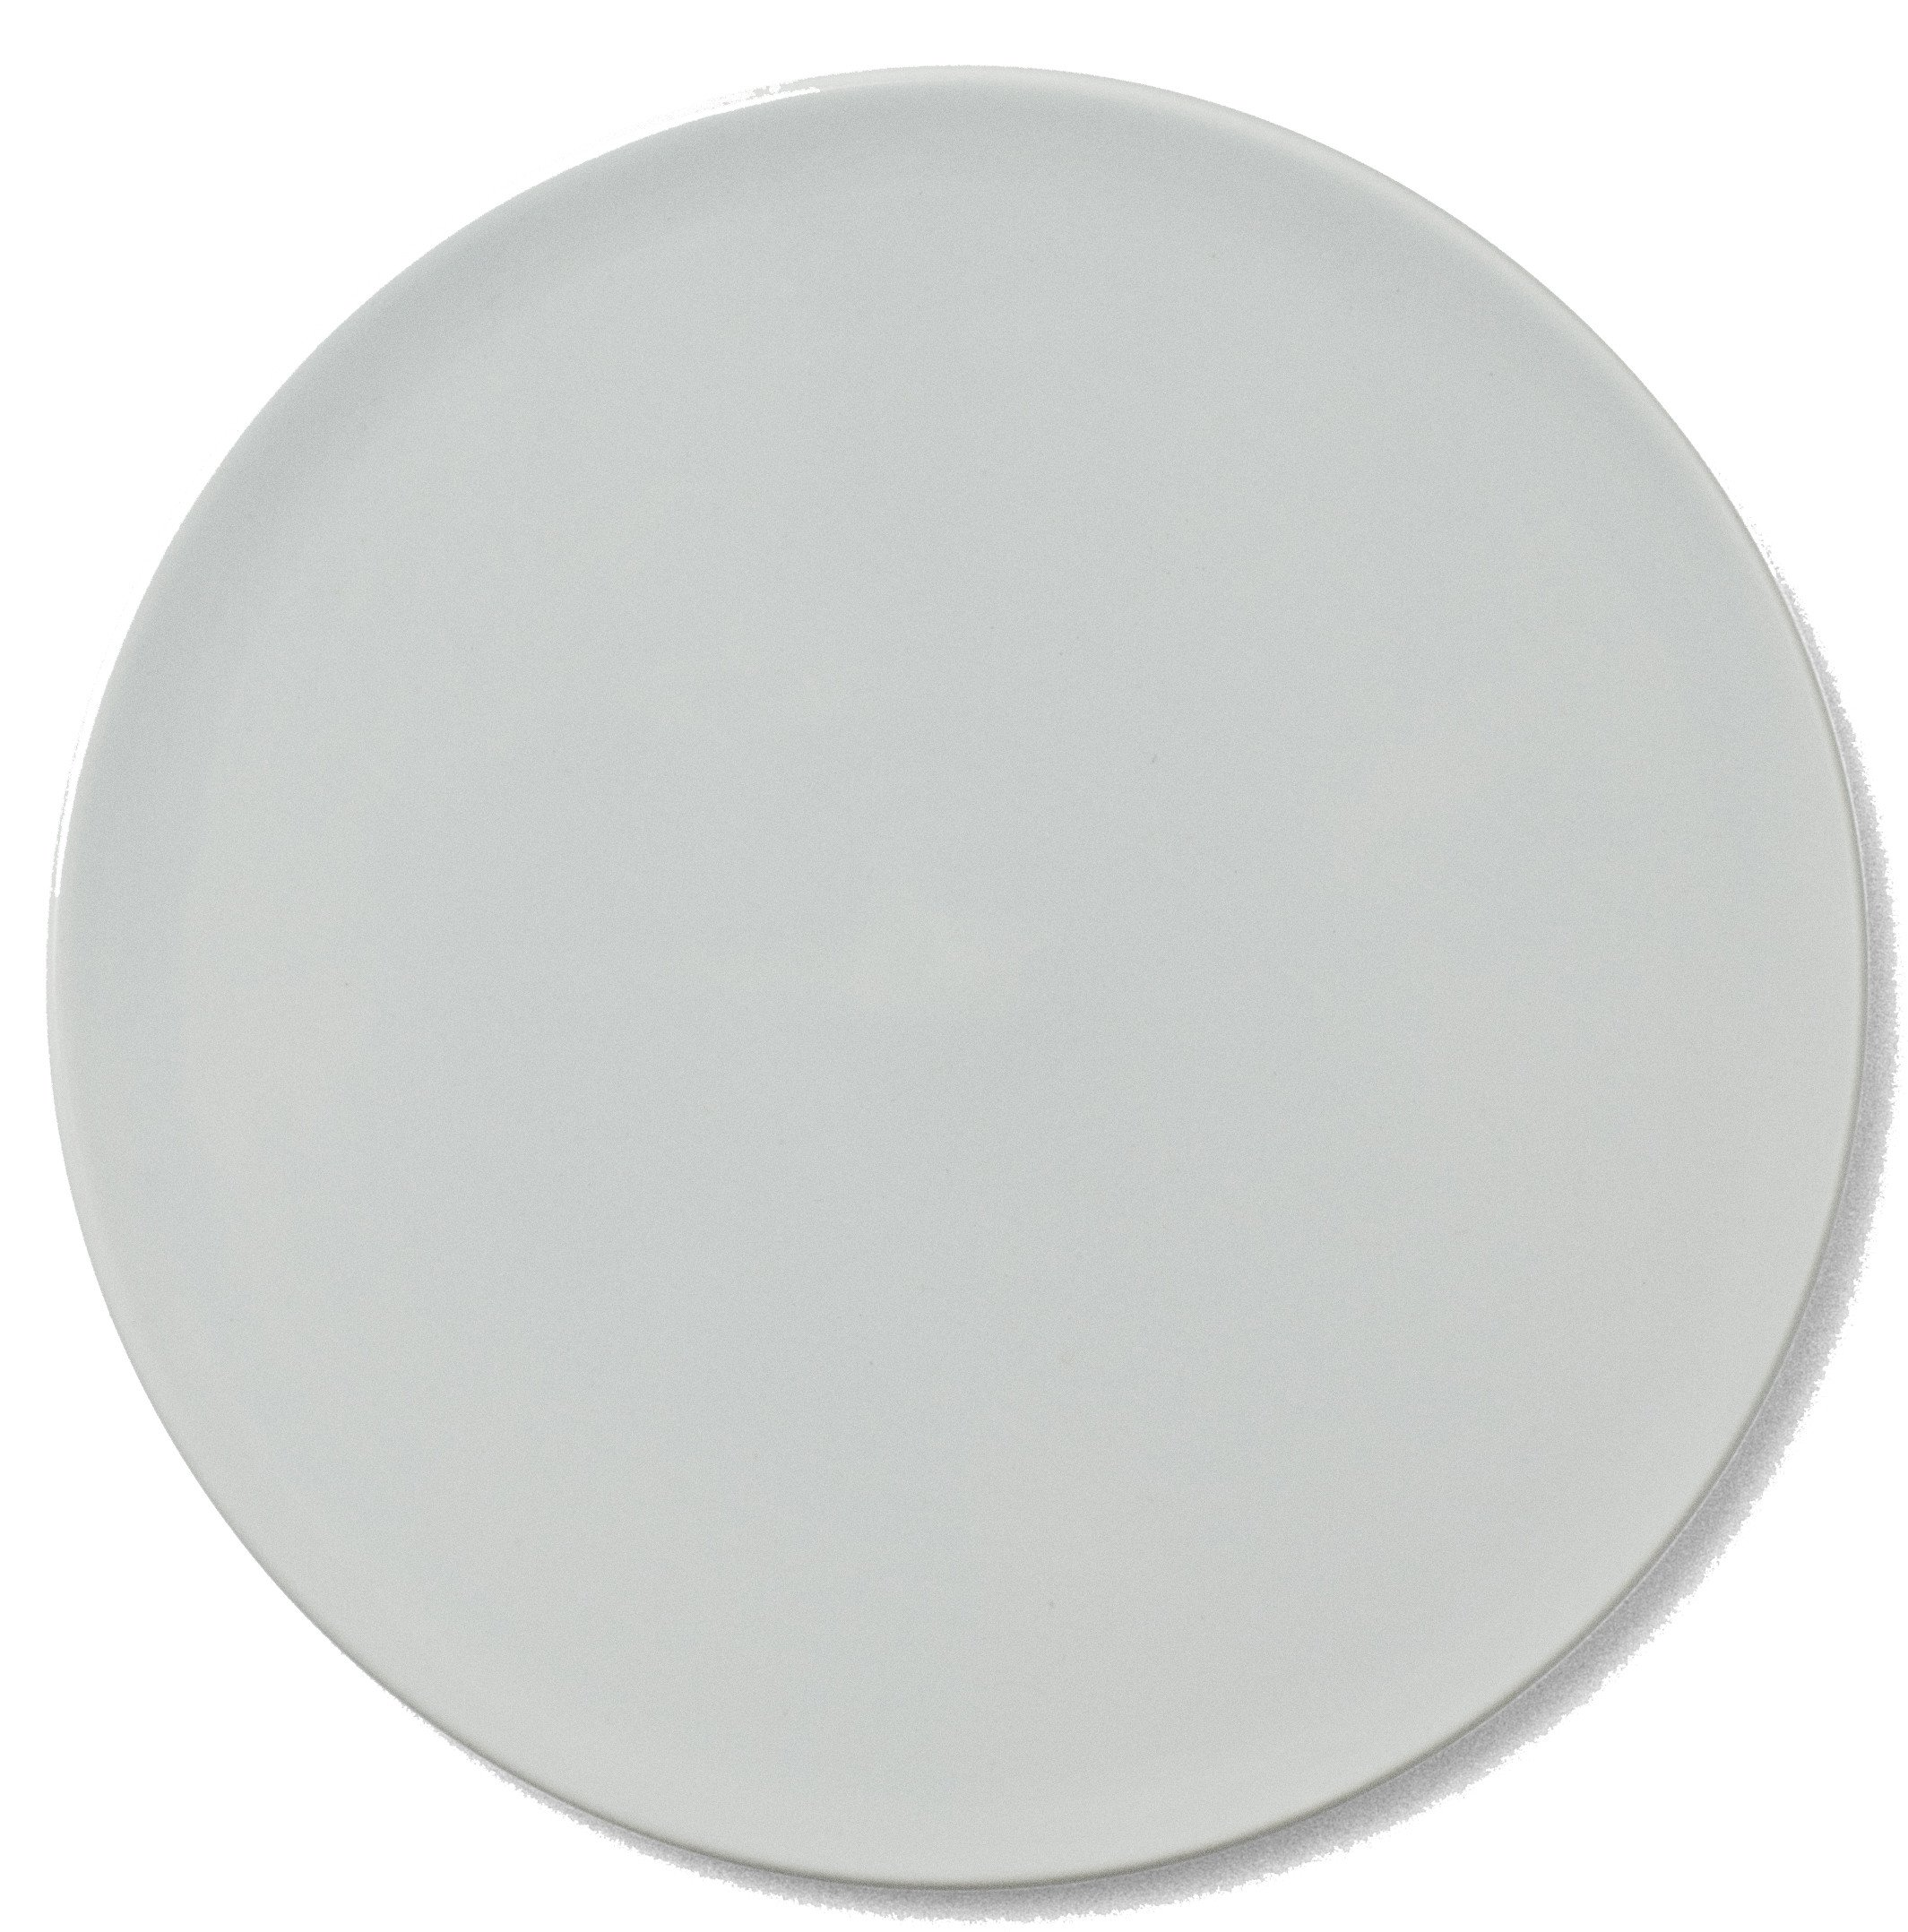 New Norm Plate/Lid Smoke Ø 17,5cm by Norm Architects for Menu